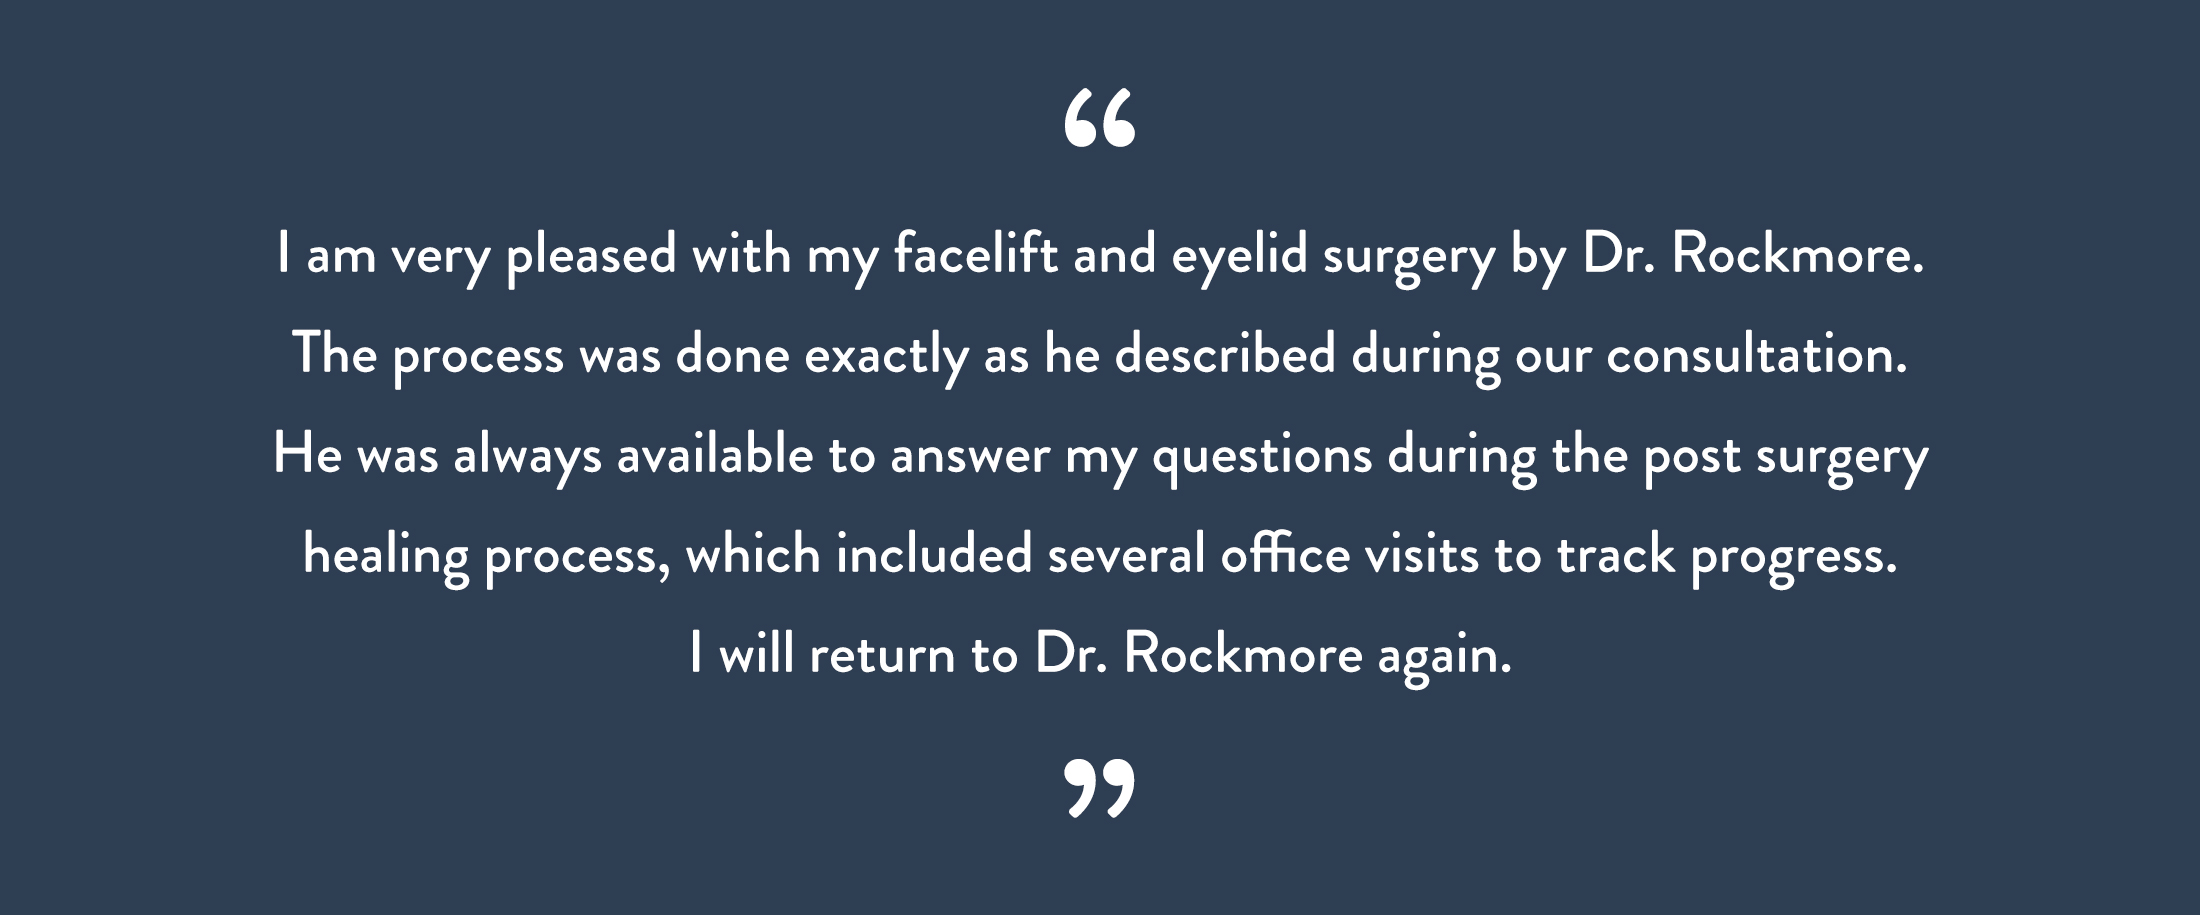 I am very pleased with my facelift and eyelid surgery by Dr. Rockmore.